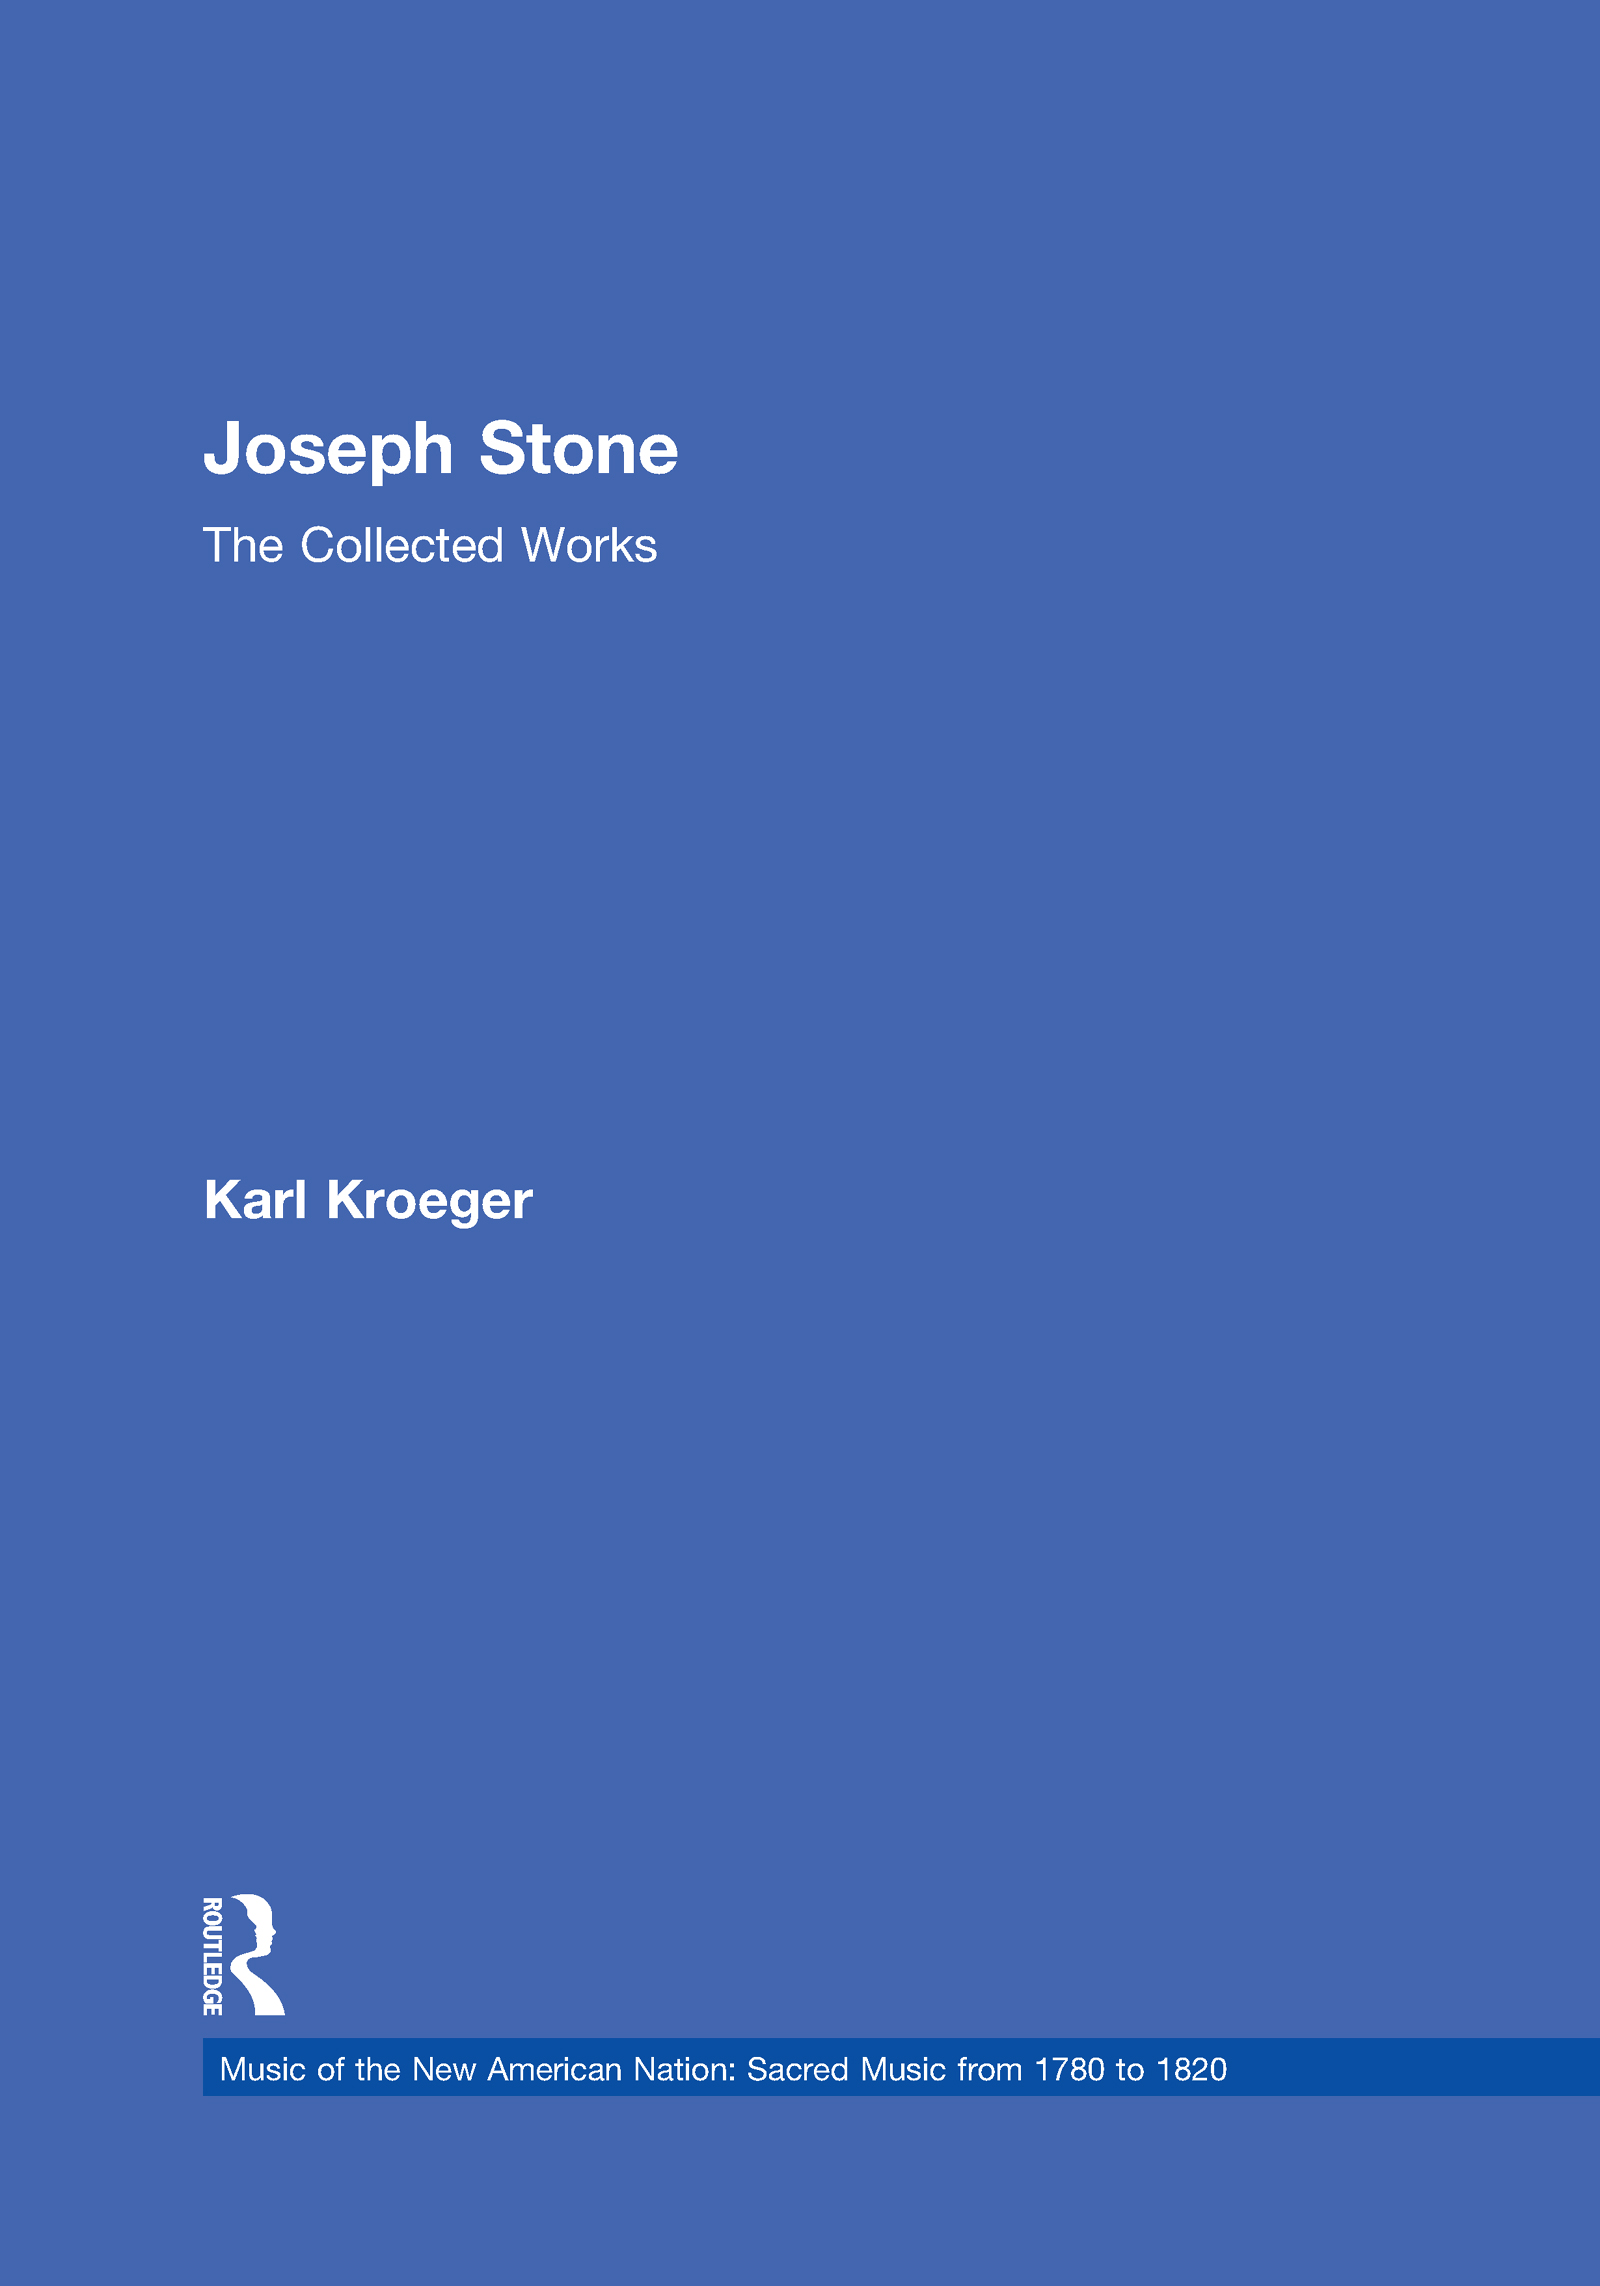 Joseph Stone: The Collected Works (e-Book) book cover